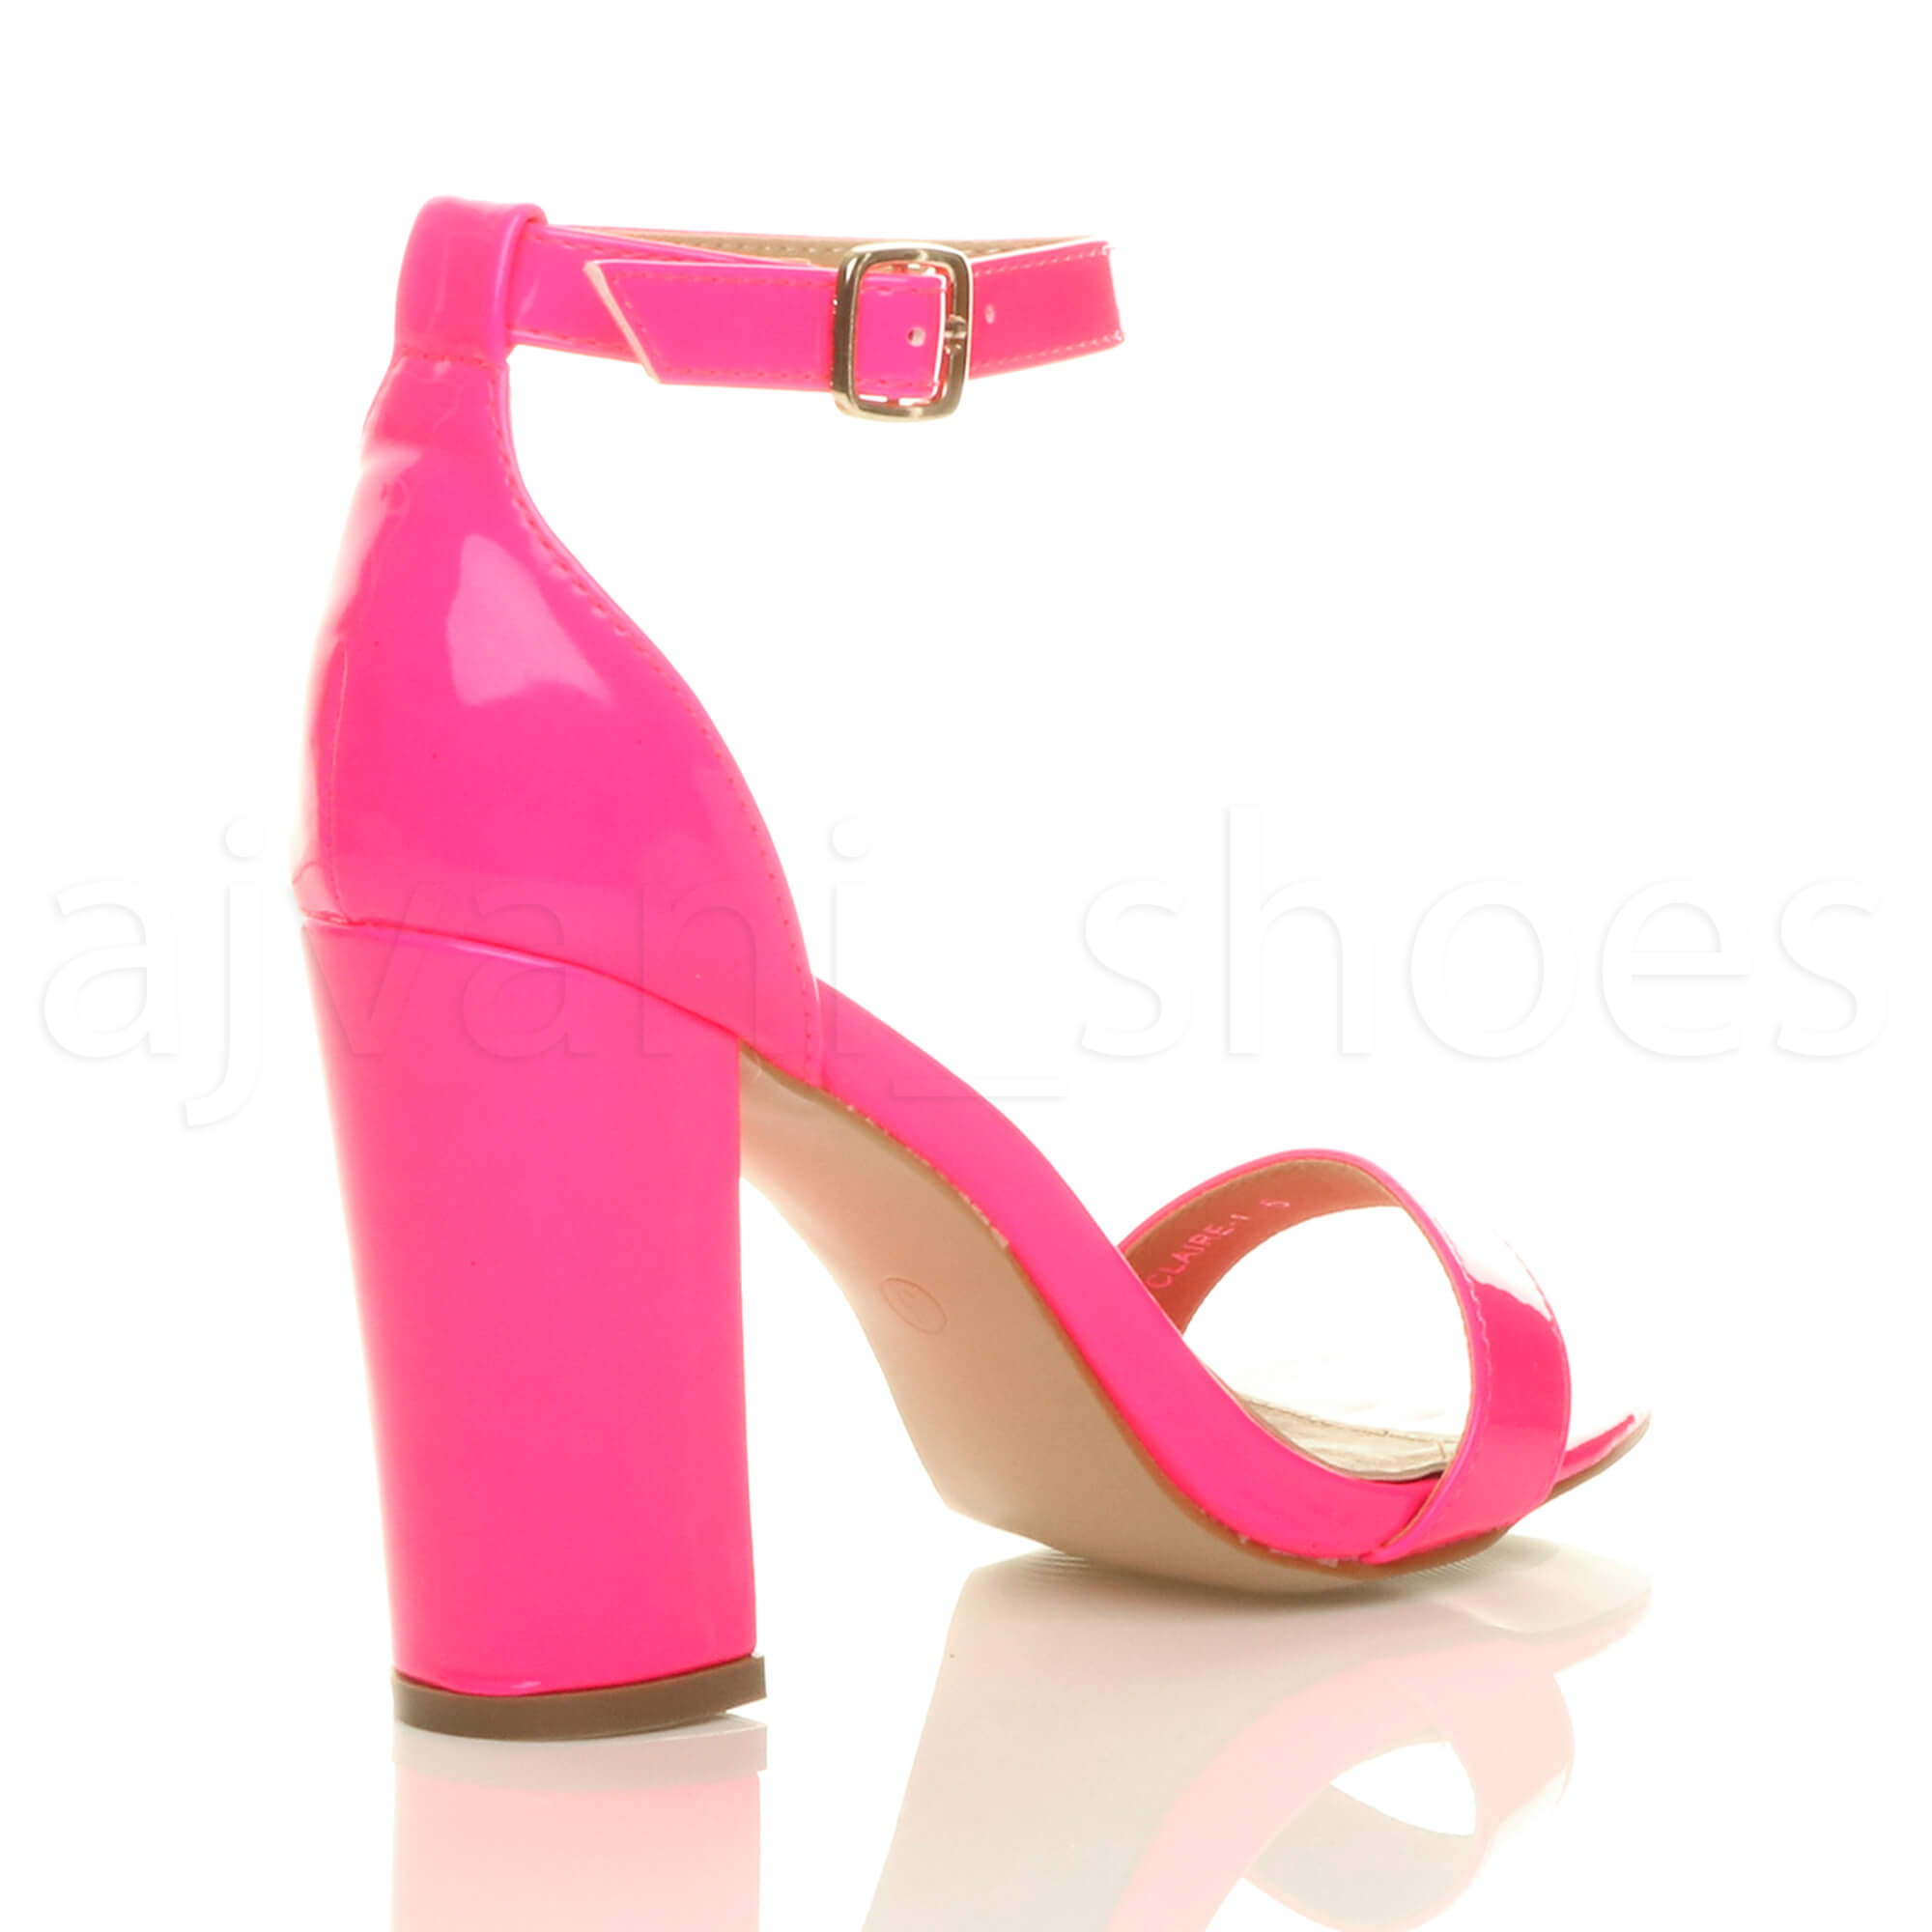 WOMENS-LADIES-BLOCK-HIGH-HEEL-ANKLE-STRAP-PEEP-TOE-STRAPPY-SANDALS-SHOES-SIZE thumbnail 91